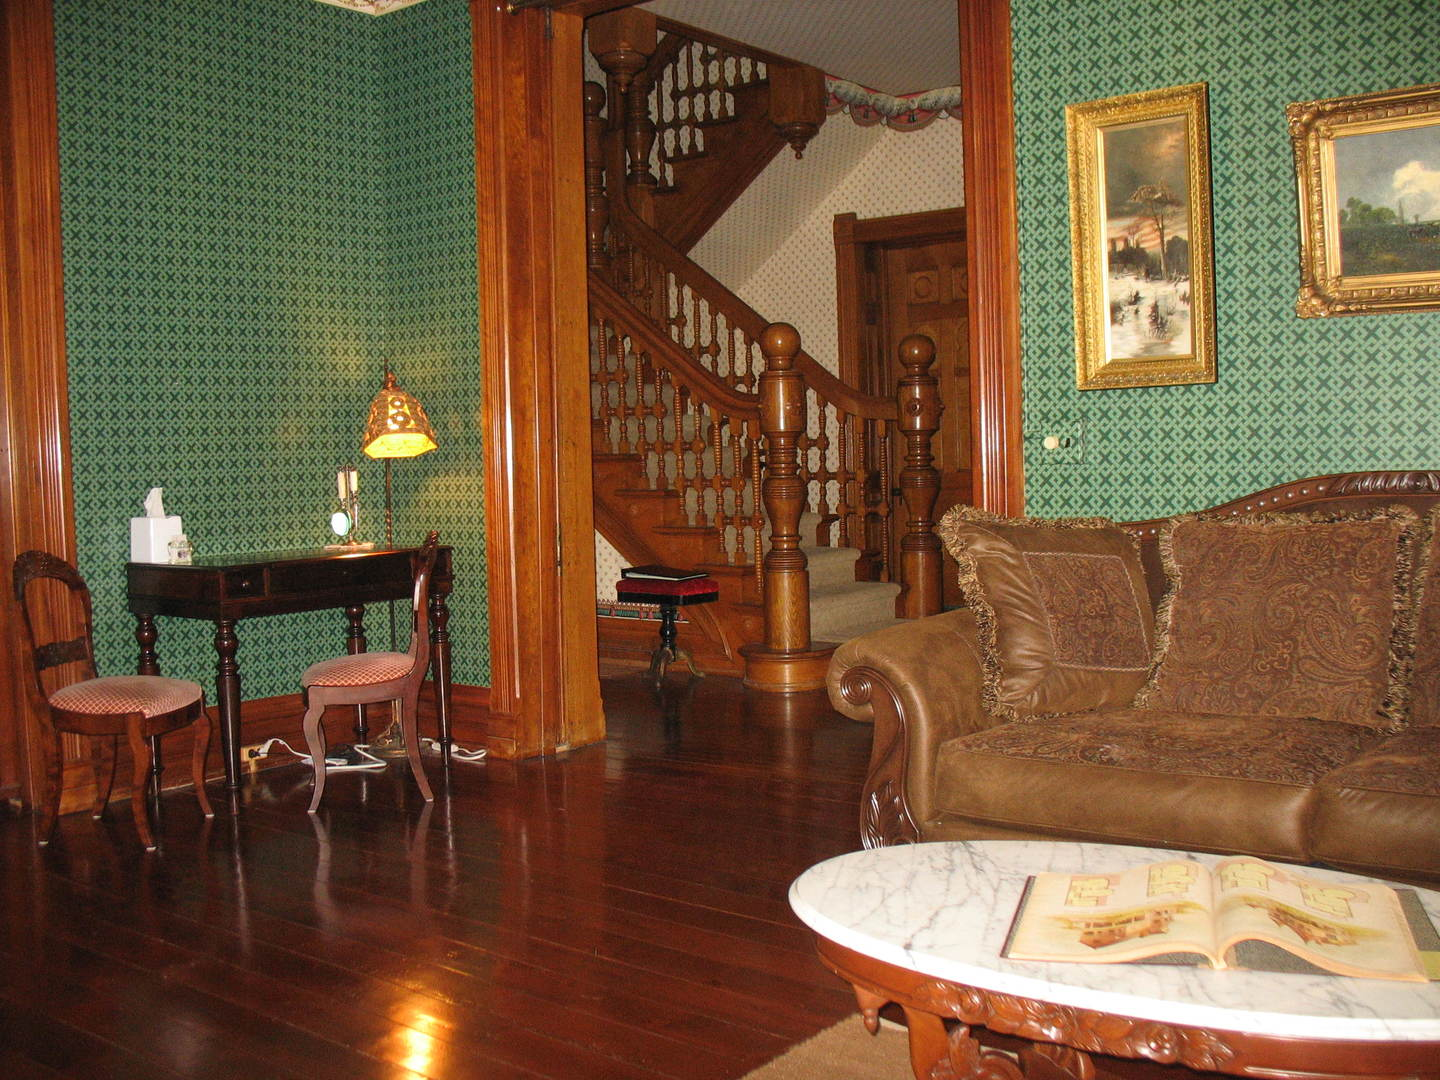 A living room with a couch and a chair at The Grand Kerr House.